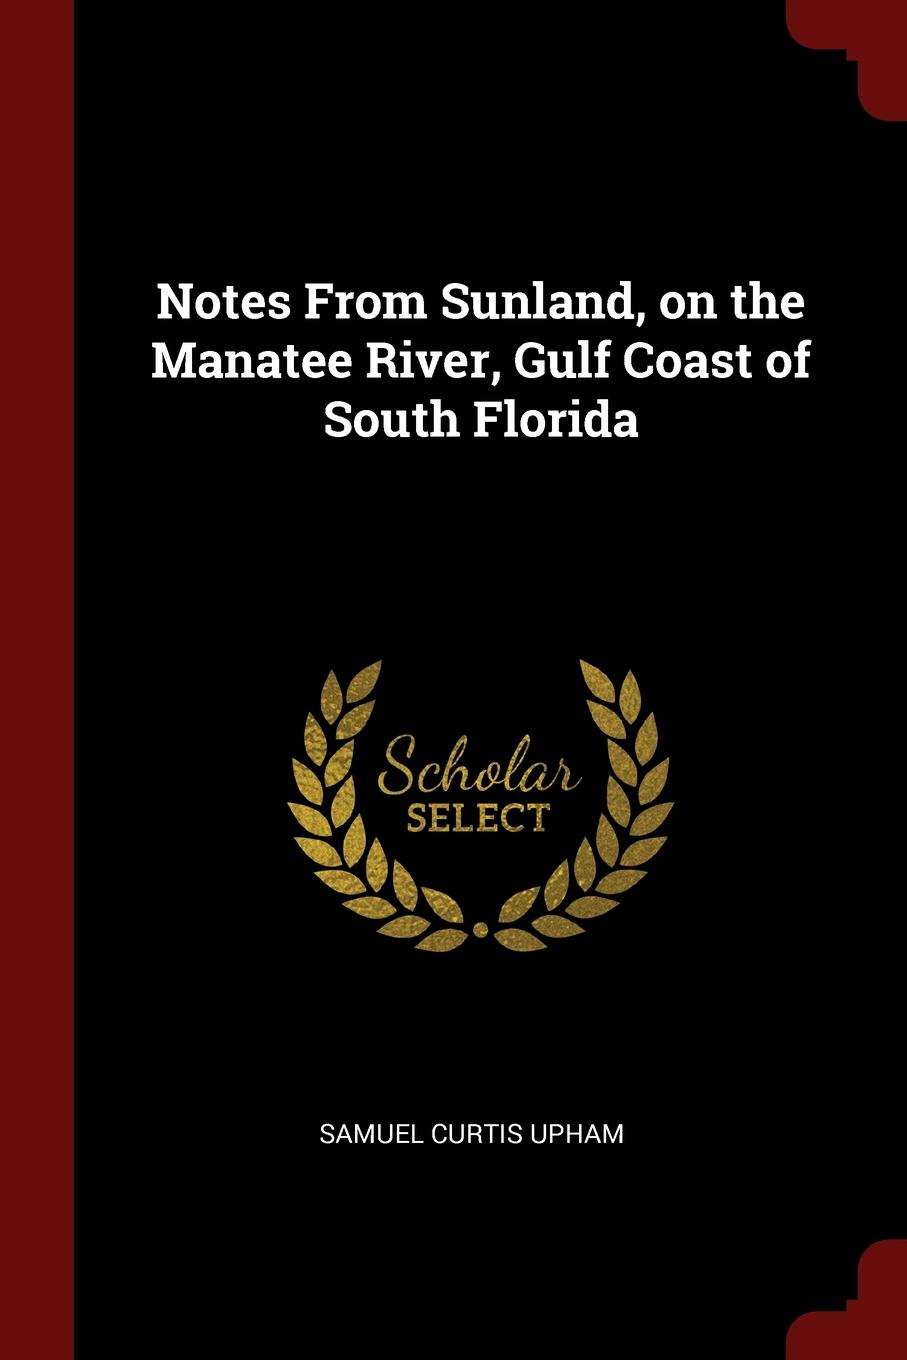 Samuel Curtis Upham Notes From Sunland, on the Manatee River, Gulf Coast of South Florida